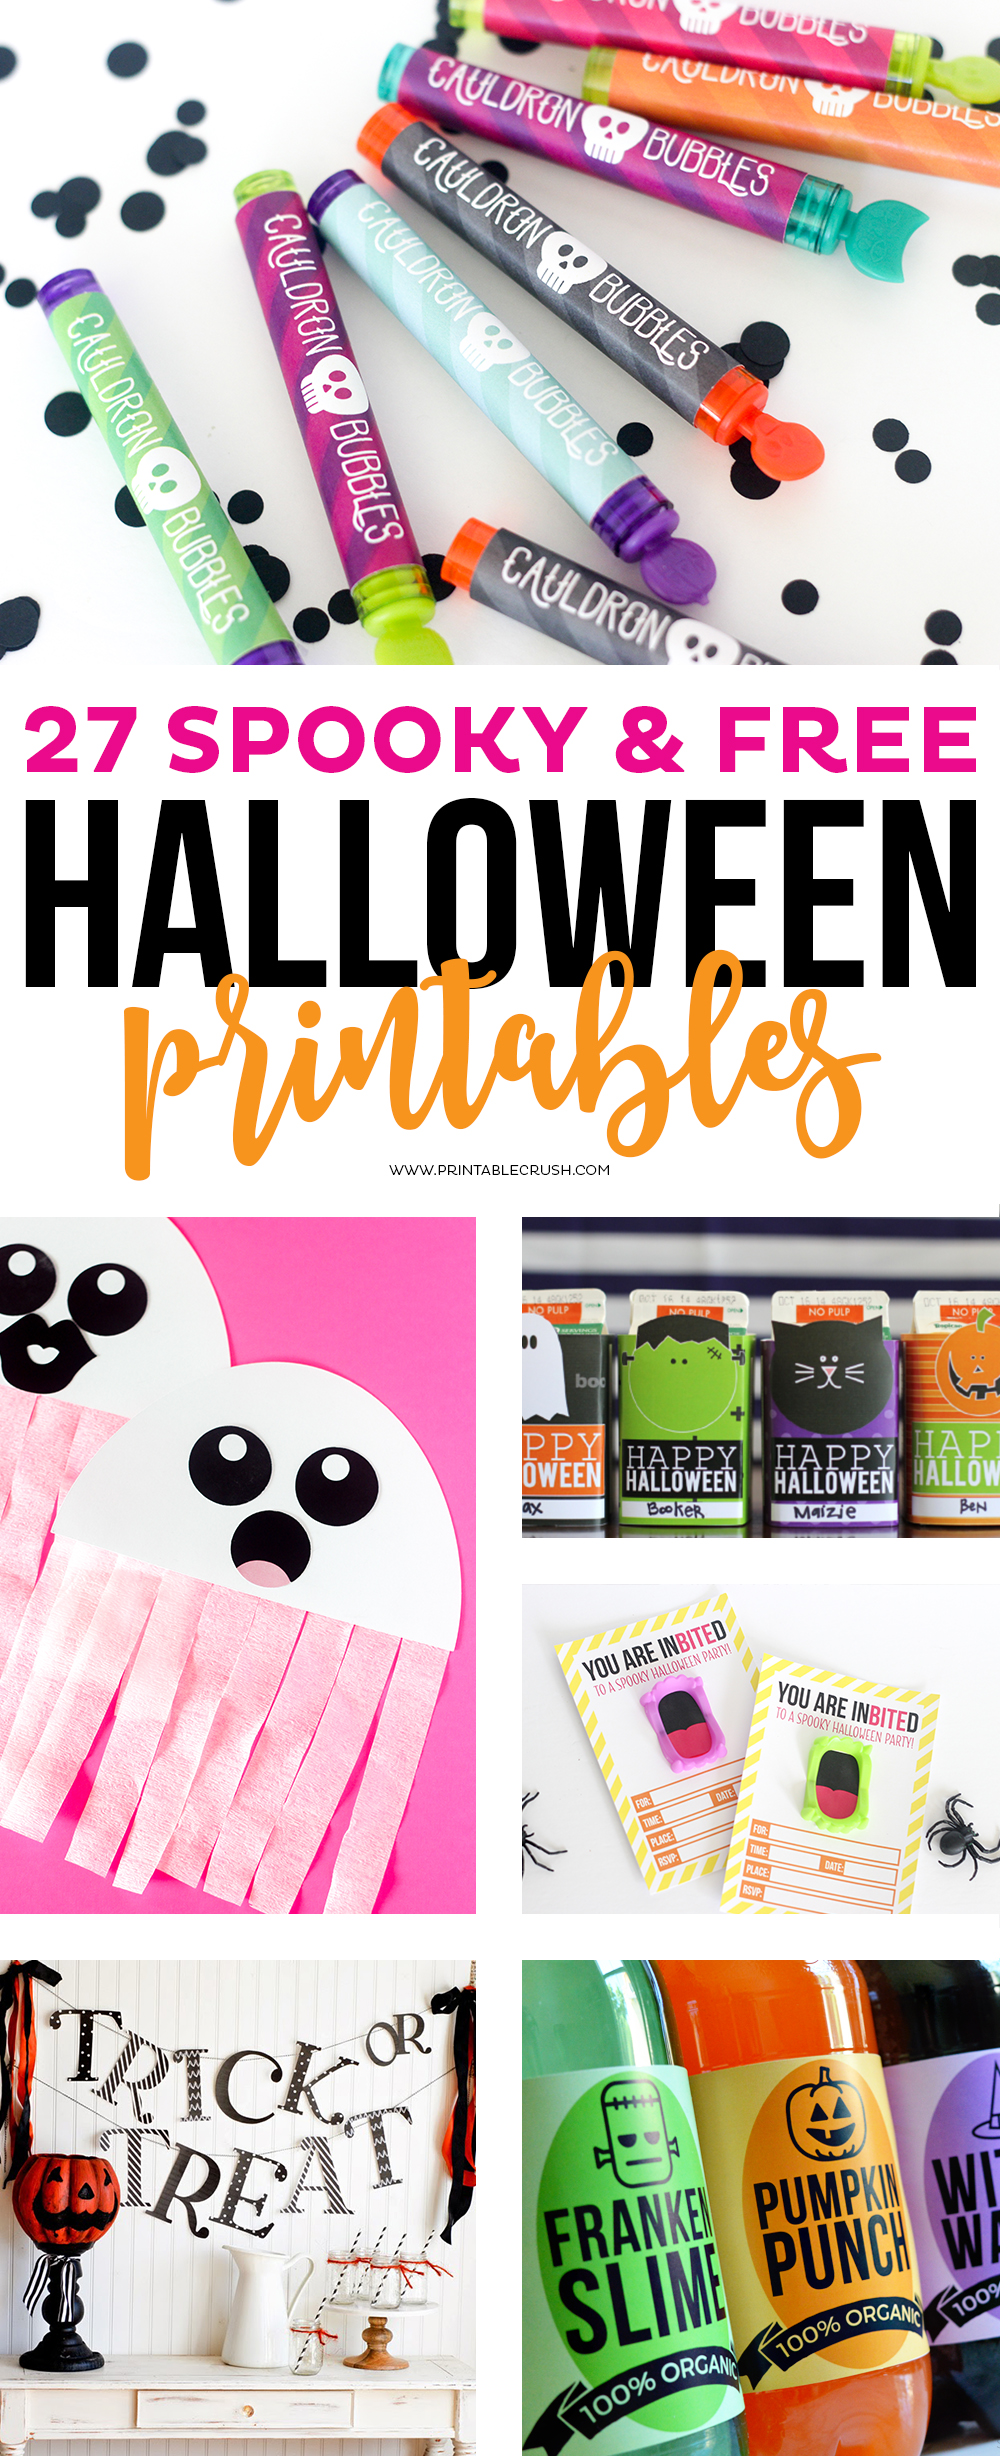 I have rounded up 27 SPOOKY AND FREE HALLOWEEN PRINTABLES to help you get ready for everything Halloween! I have included fun crafts, games, adorable tags, invitations, and more!